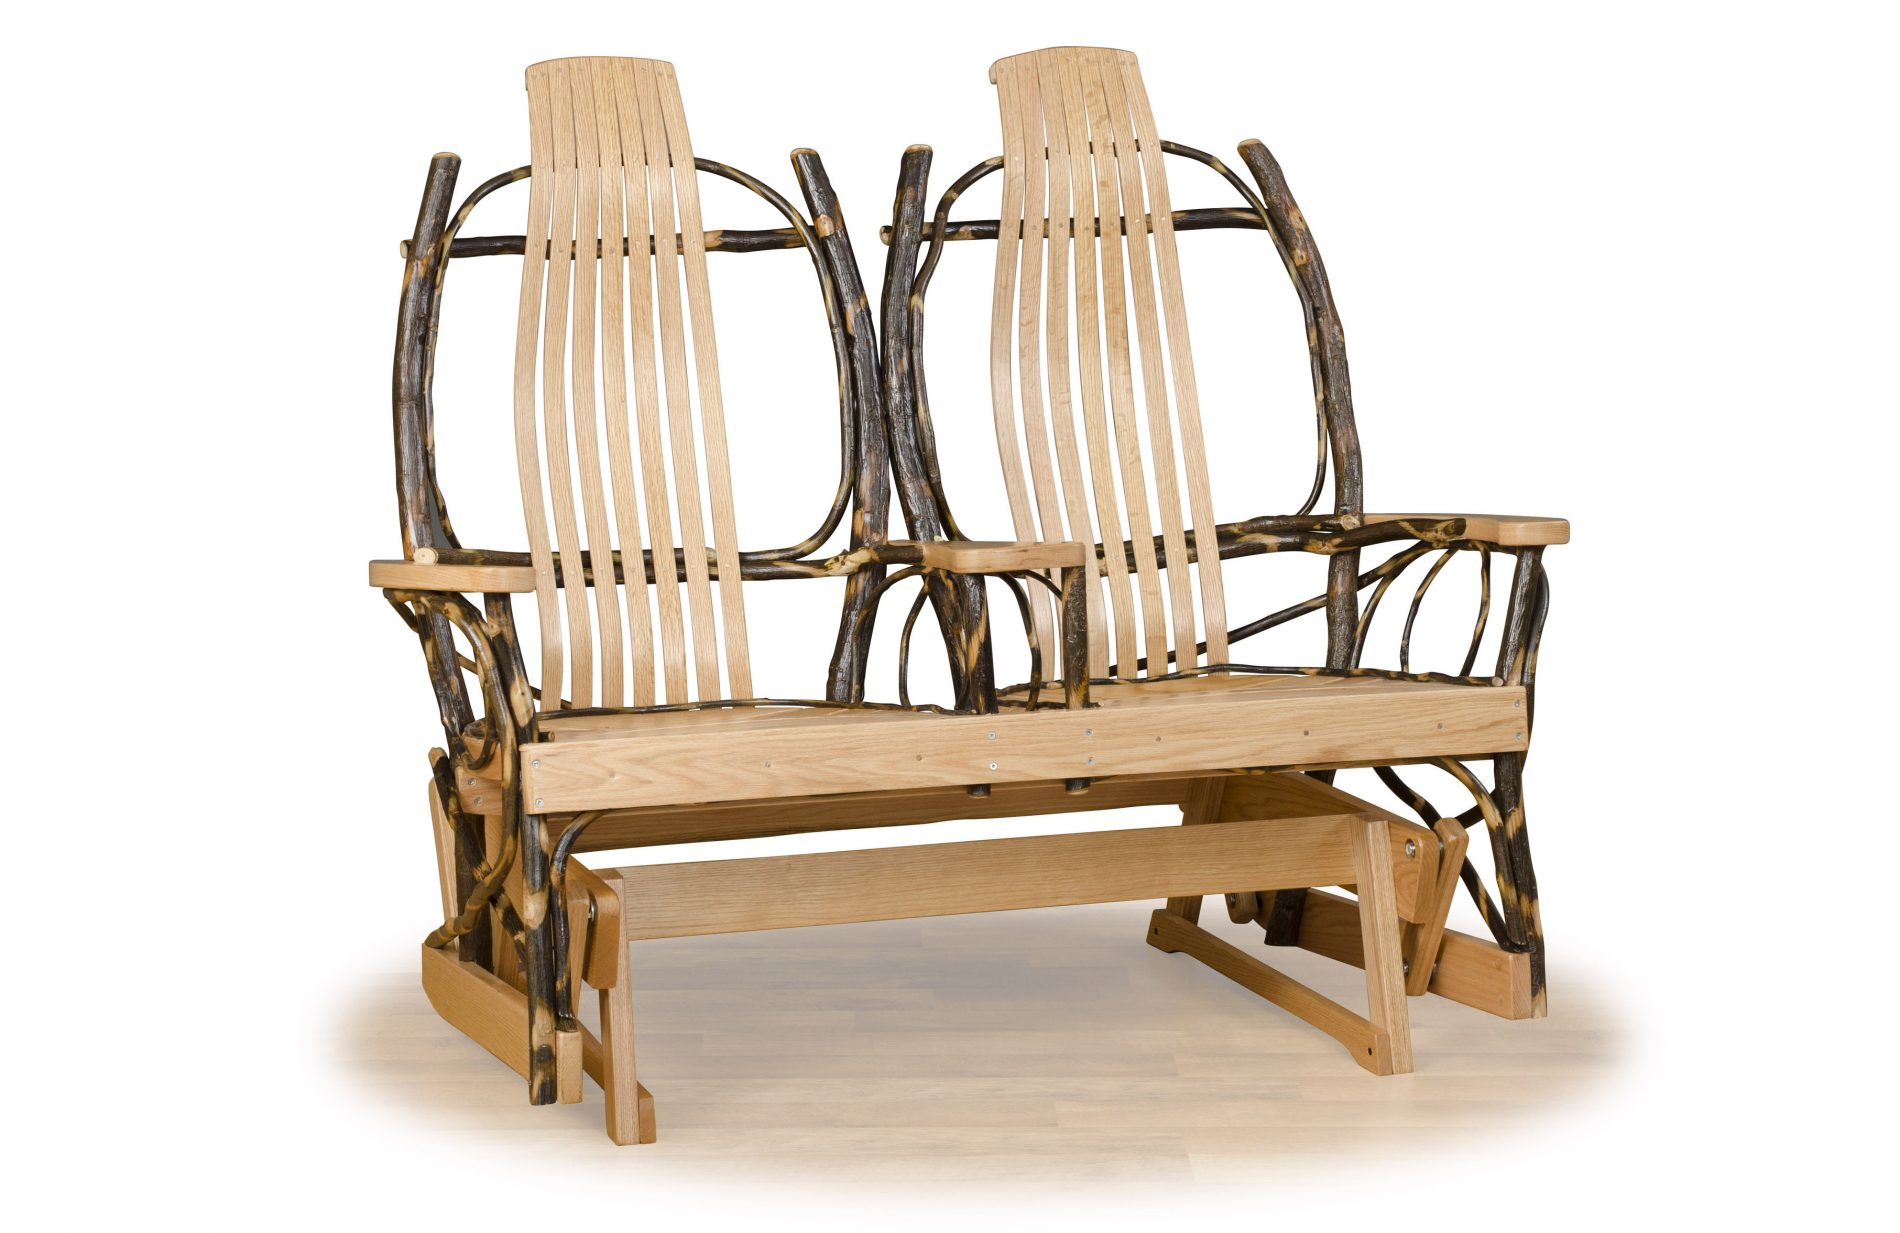 hickory chair dallas design center woven patio repair living room furniture amish wood